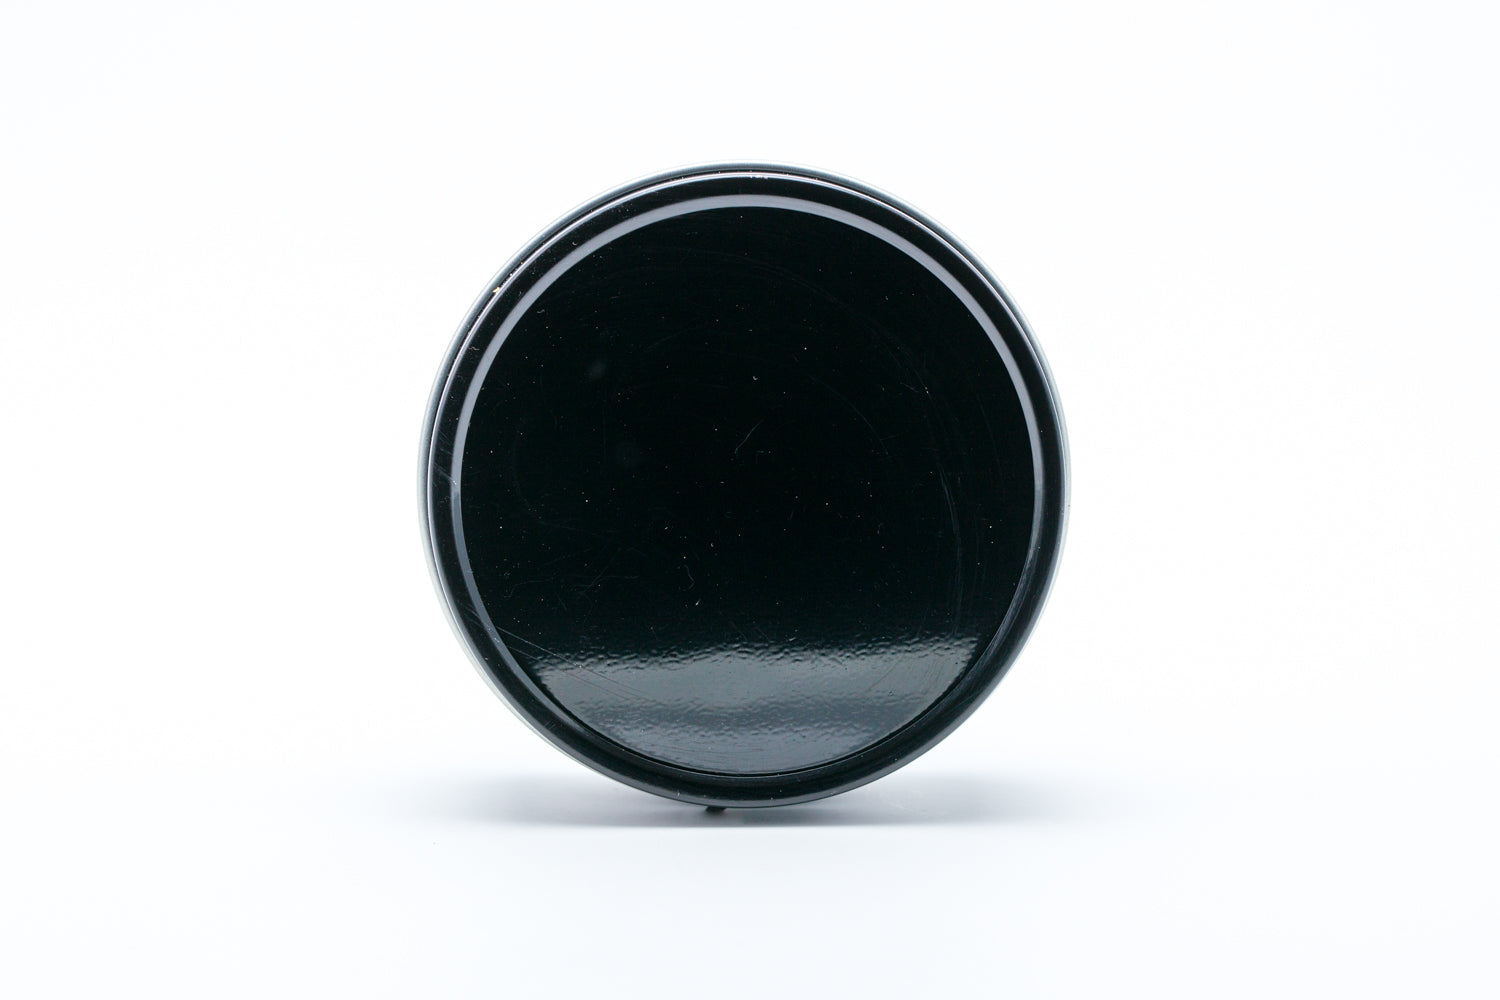 Shaving Soap Black Metal Container - Emz Blendz